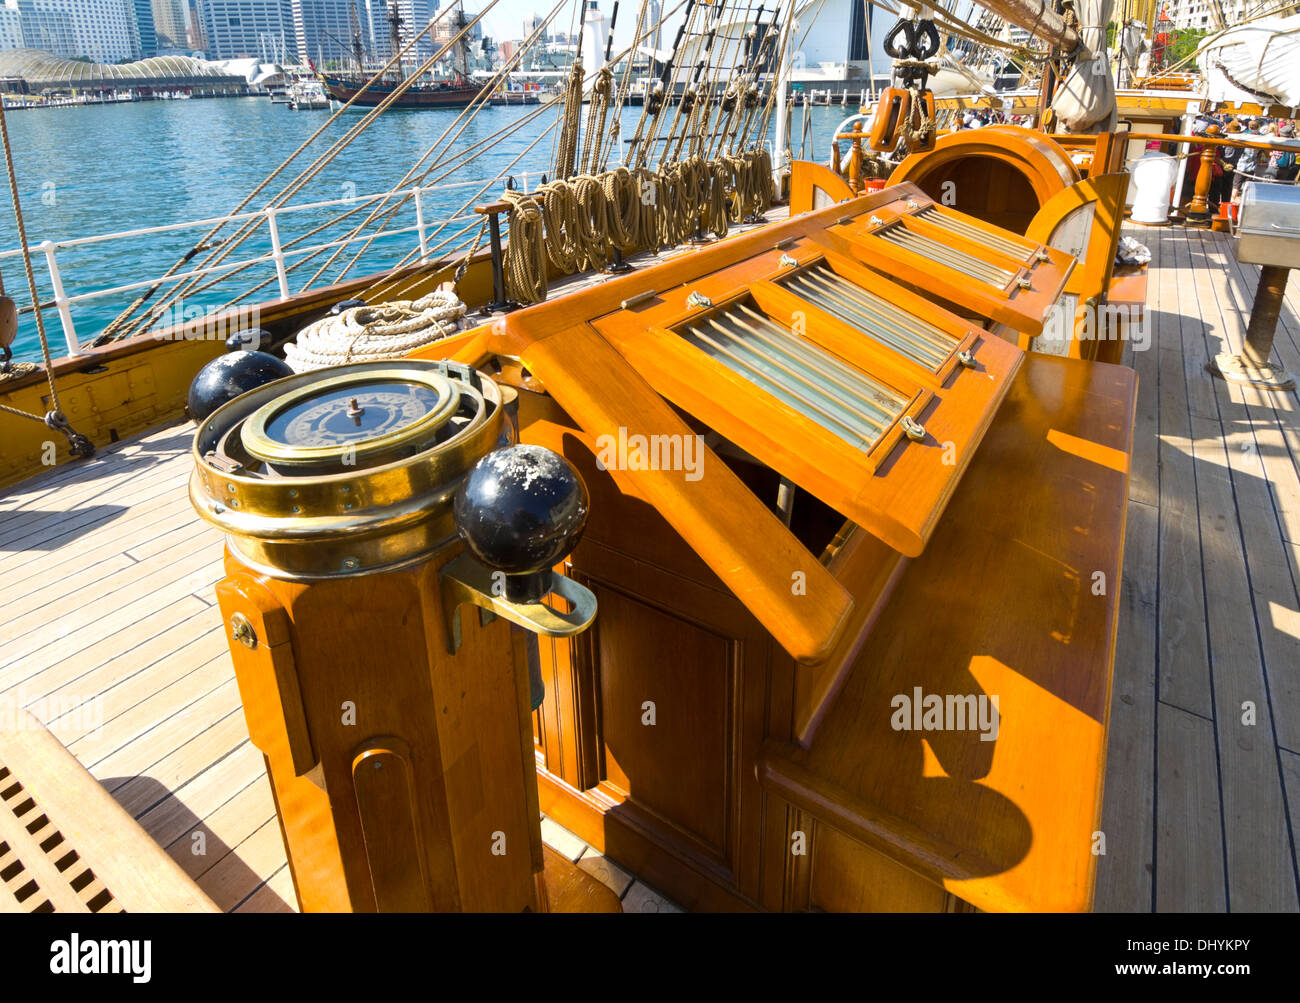 Deck of the James Craig Tall Ship, Sydney, Australia - Stock Image